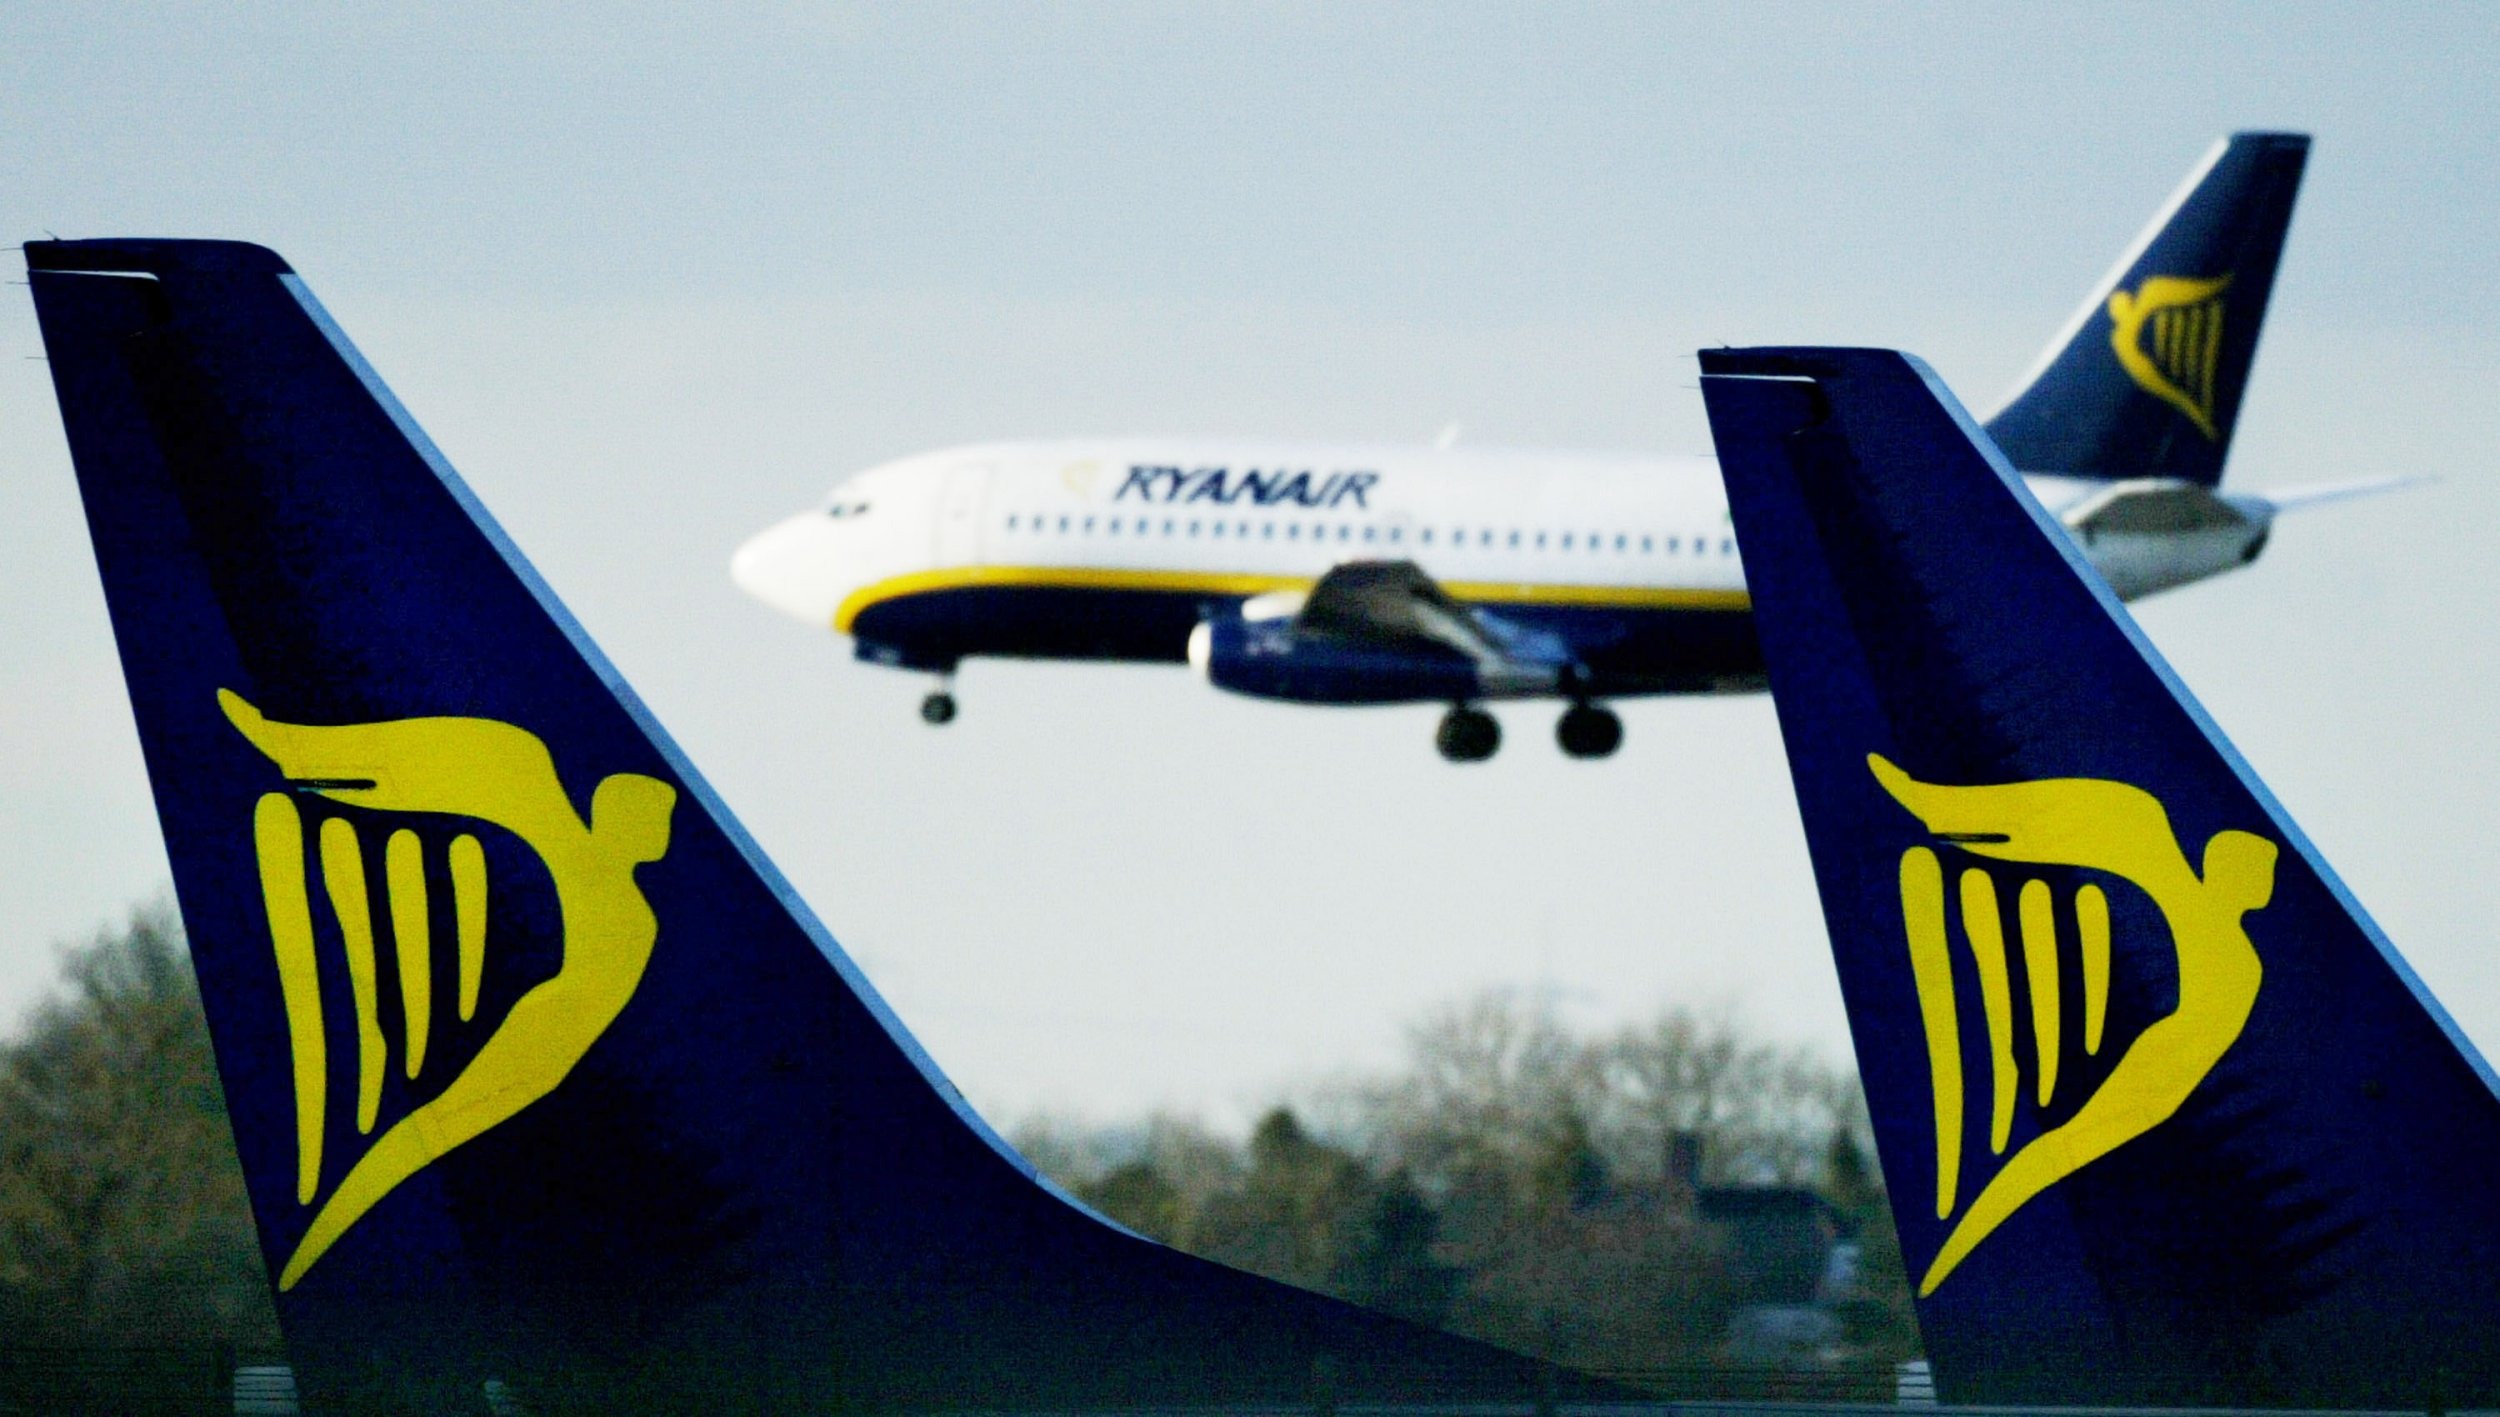 Ryanair planes 'nearly involved in mid-air crash over Spain'